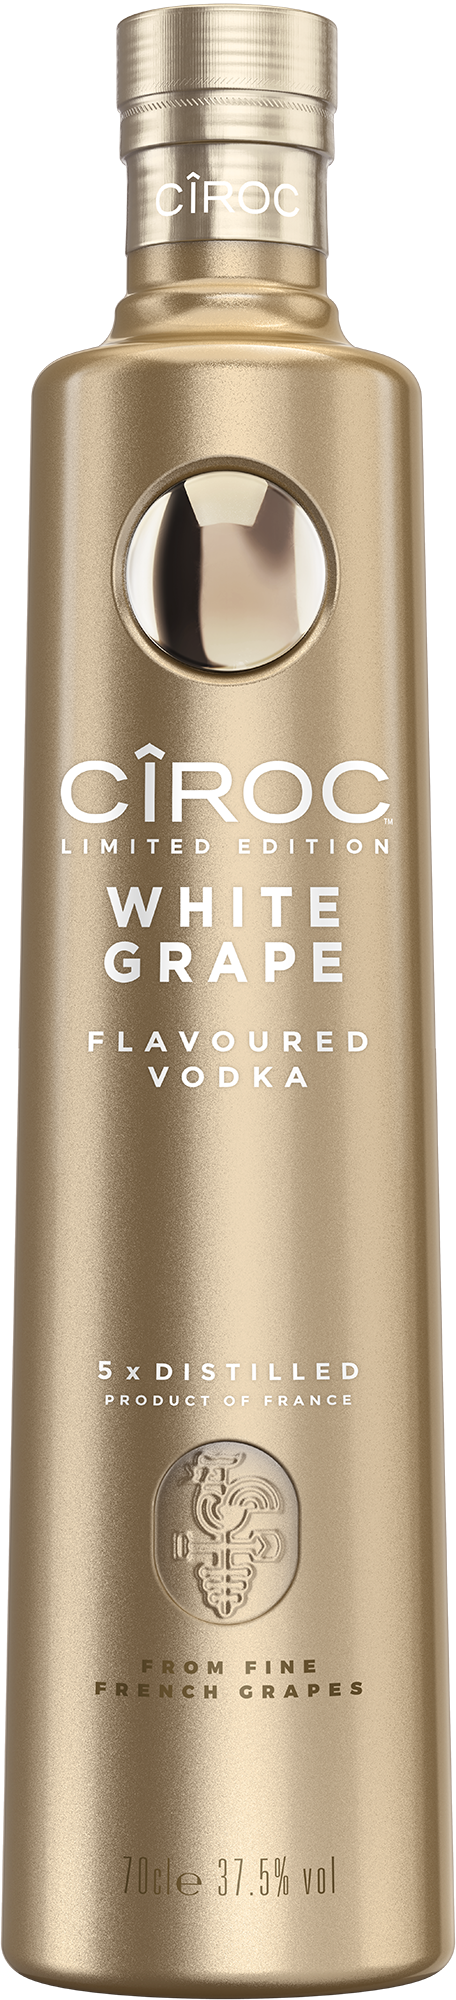 CÎROC White Grape